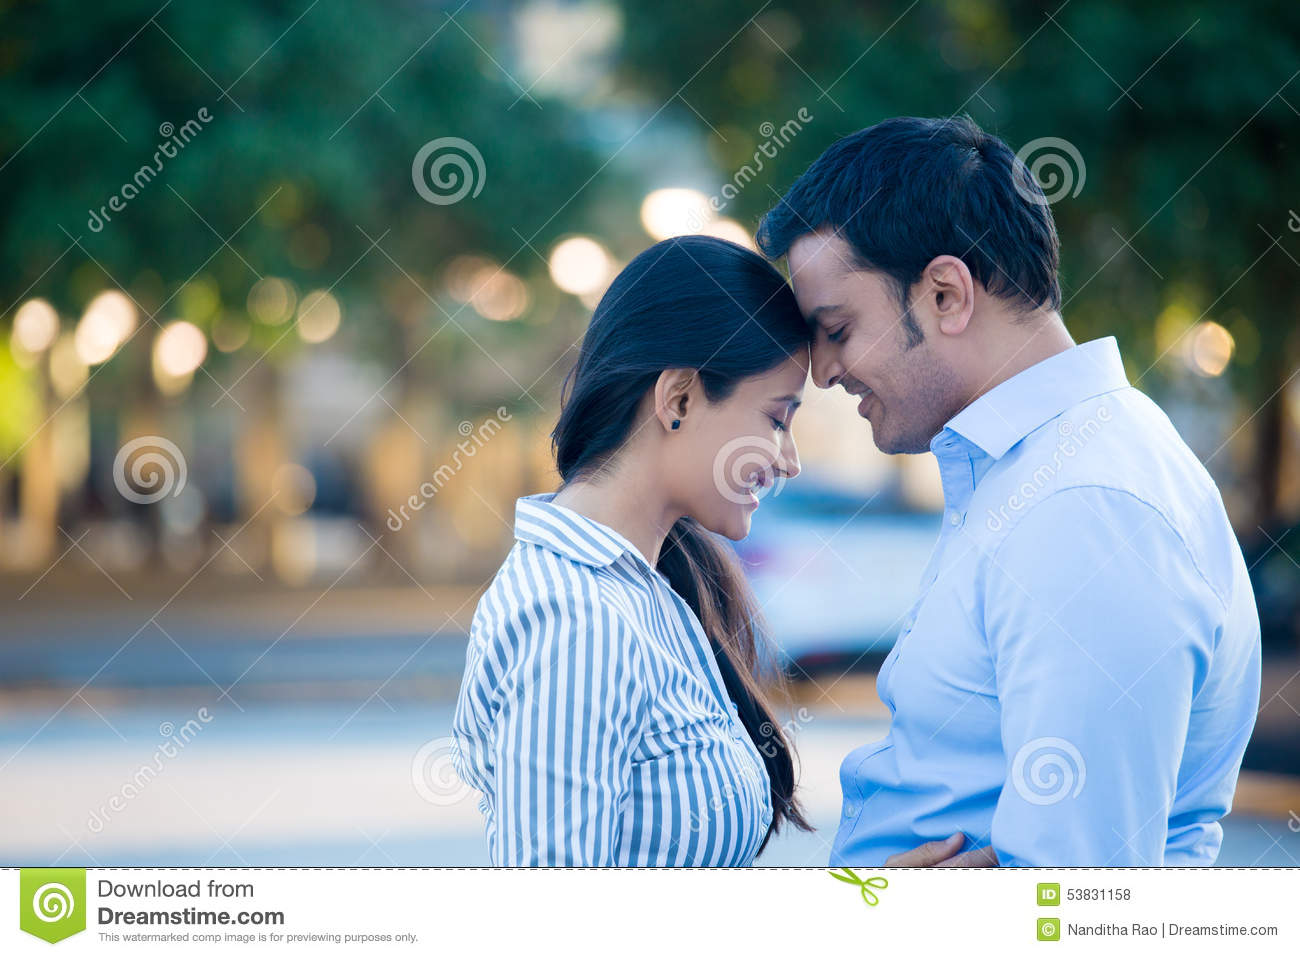 Cute Couple In Love Stock Photo - Image: 53831158